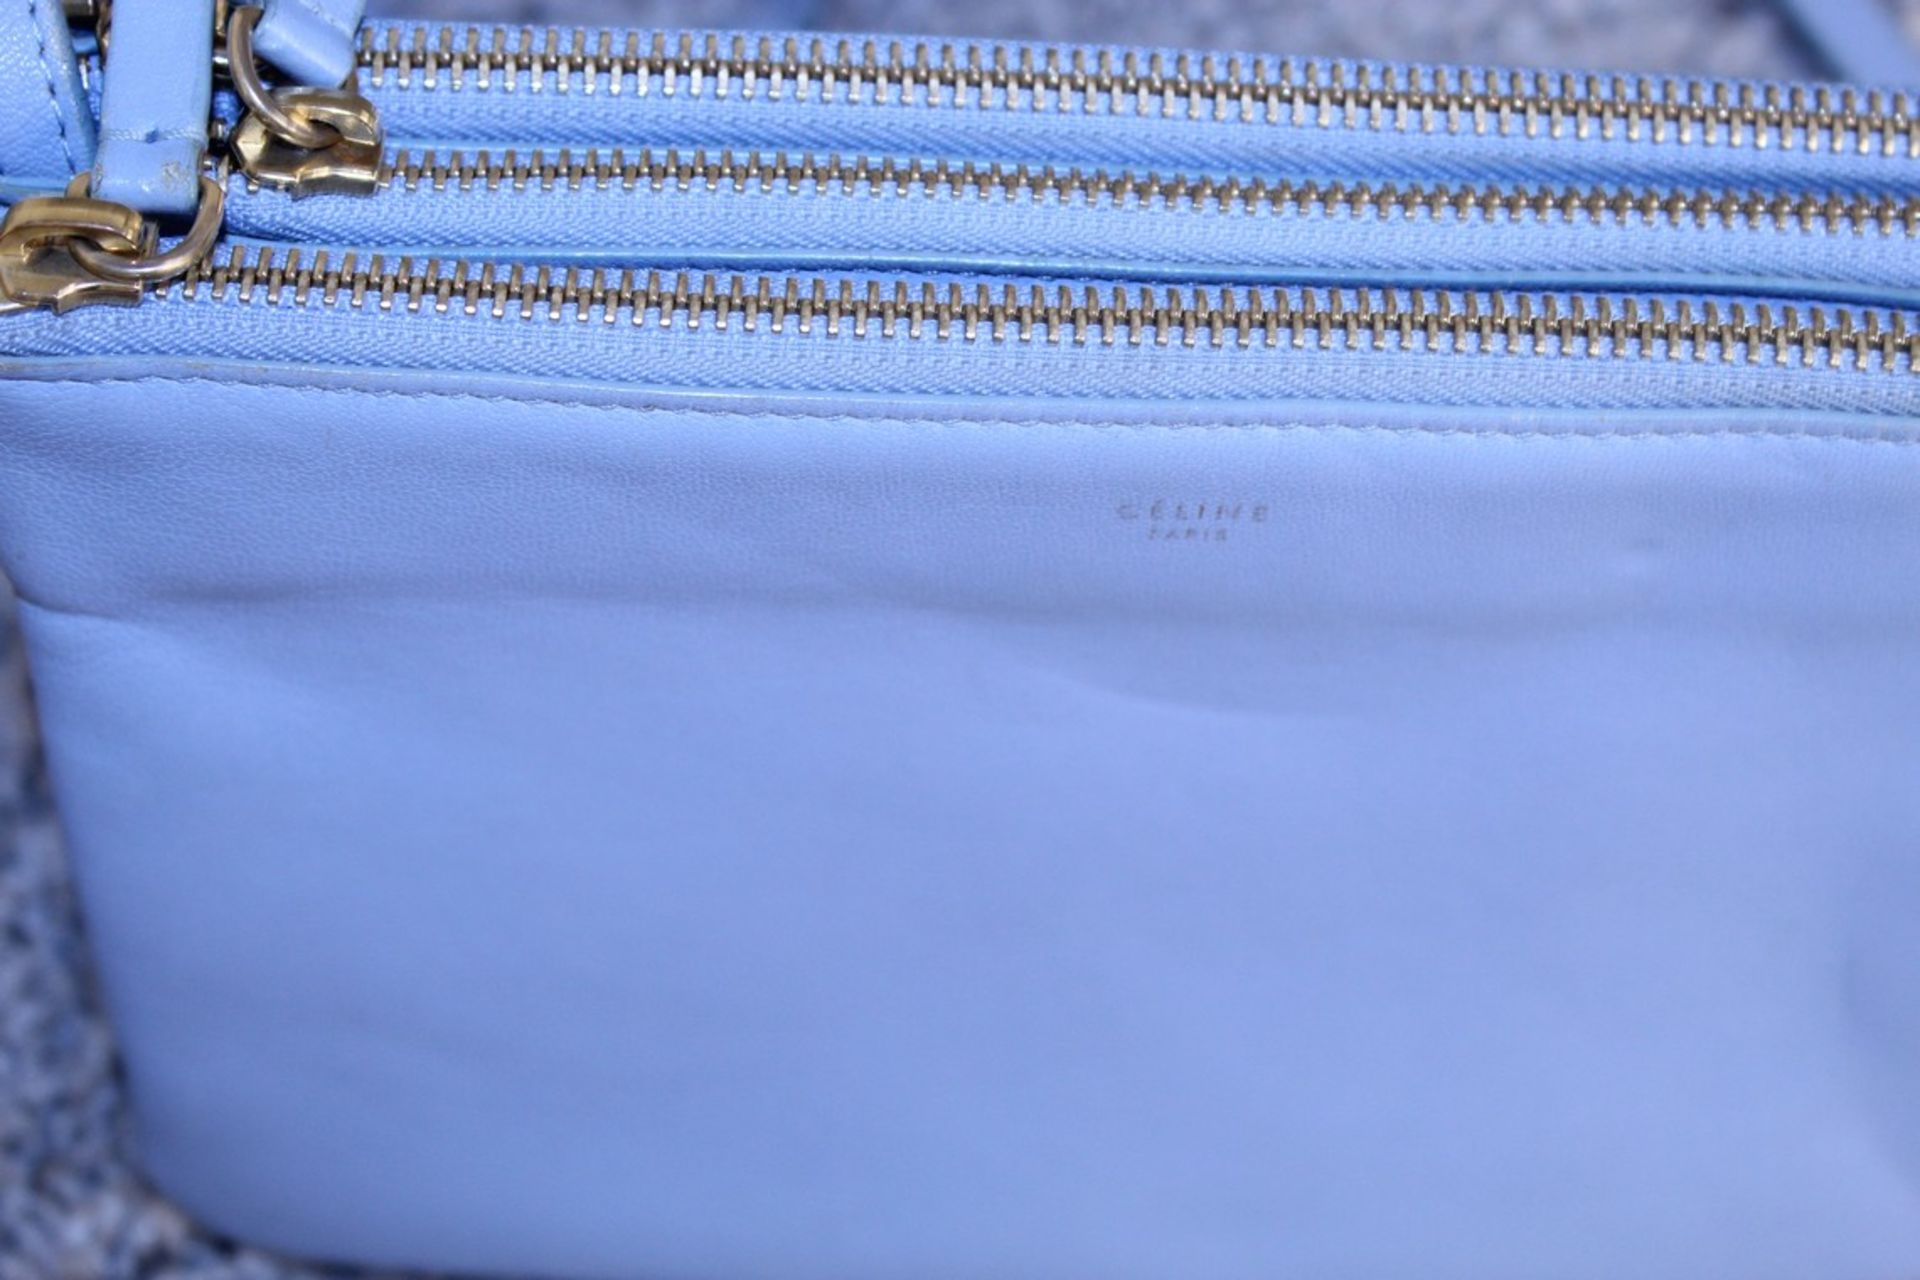 RRP £890 Celine Small Shoulder Bag, Blue Small Grained Claf Leather With Blue Leater Handles. - Image 2 of 3